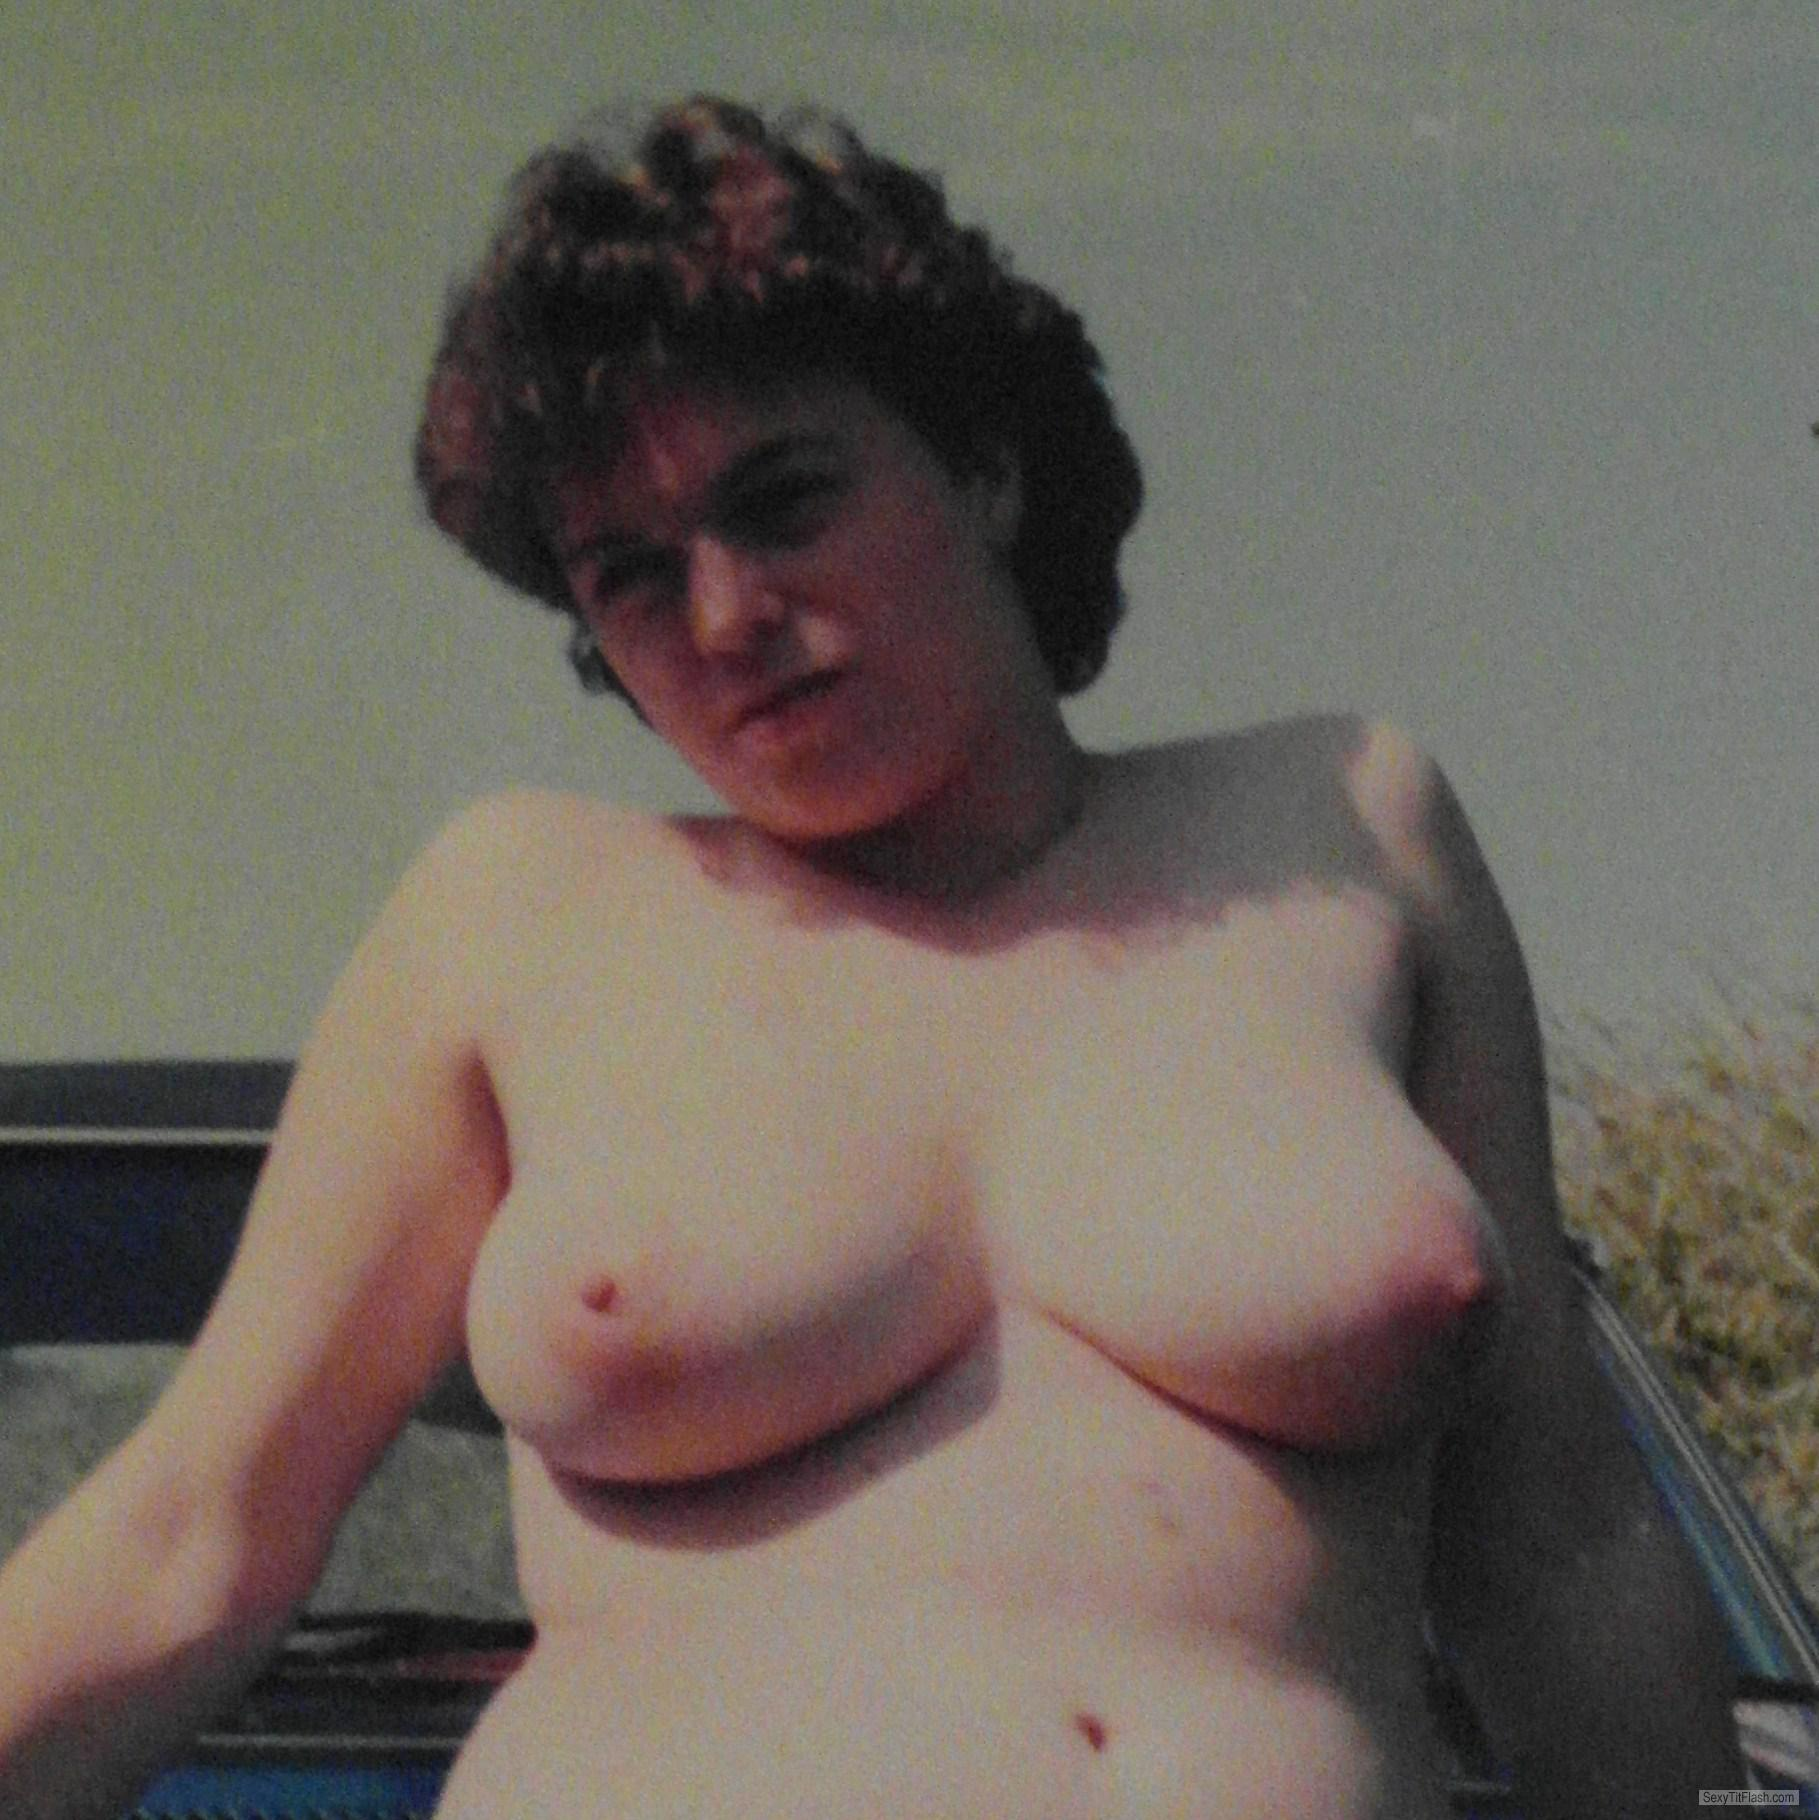 Tit Flash: My Friend's Very Big Tits - Retro Nude from United Kingdom